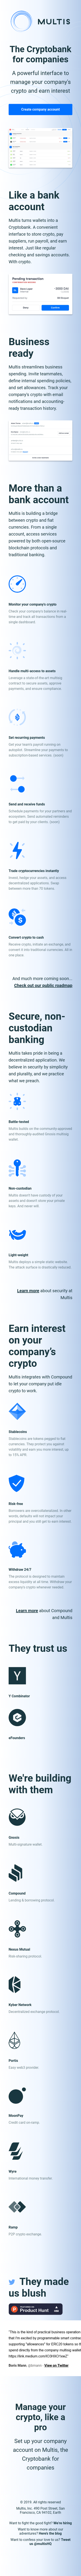 Example of Design for Finance, Investing, Mobile Landing Page by multis.co | Mobile Landing Page Design